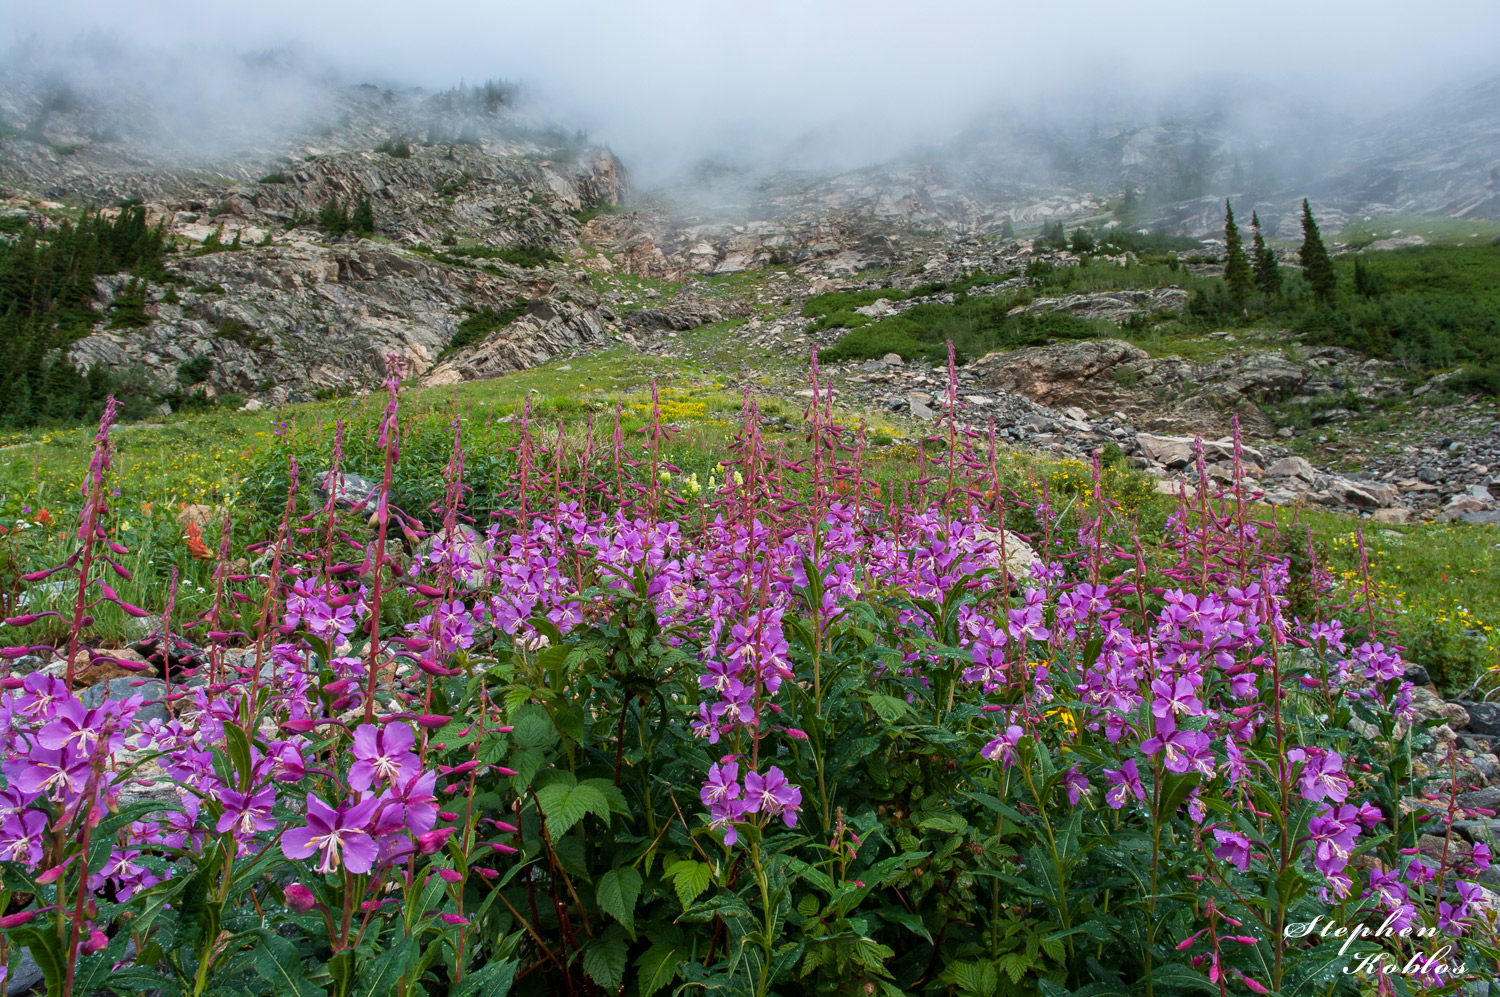 Fireweed in the fog  Limited Edition of 250